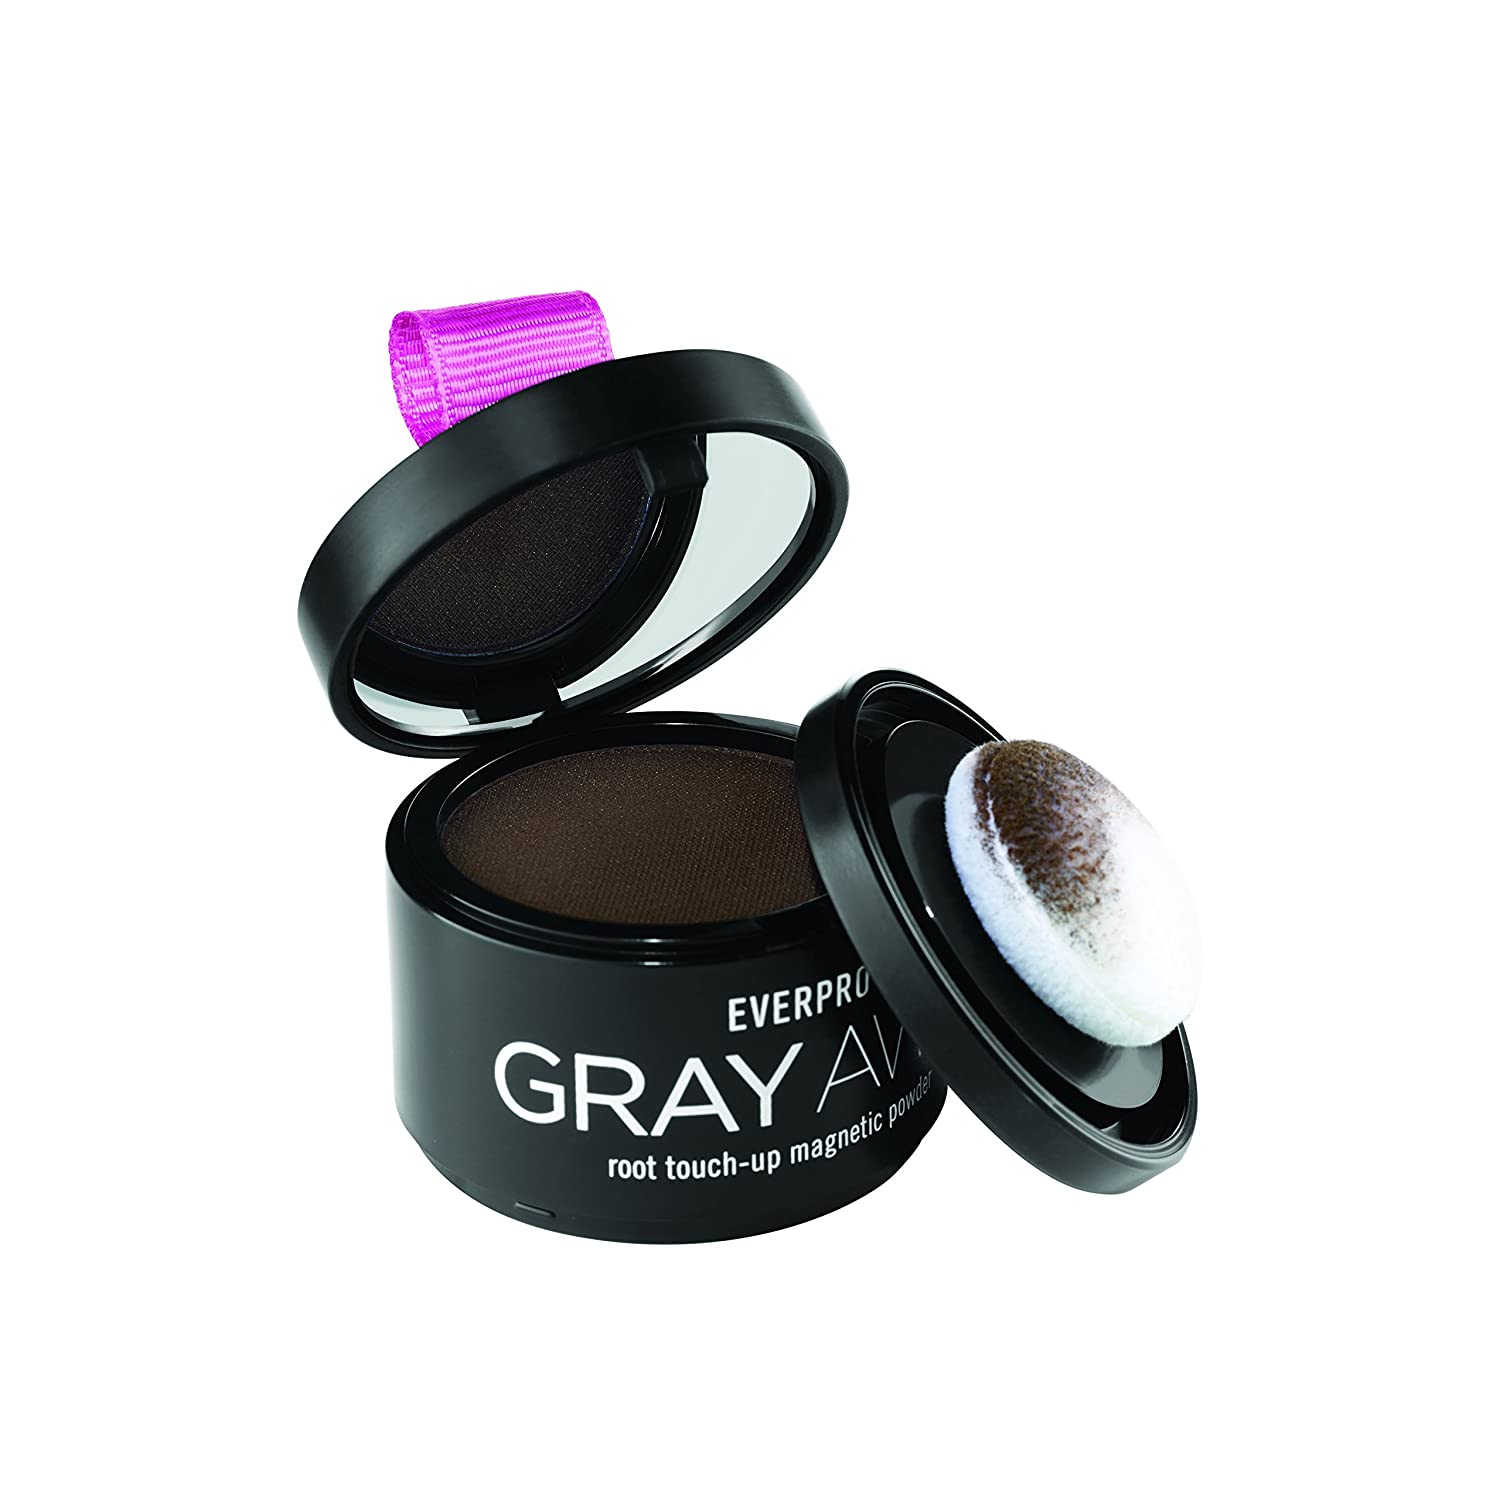 Everpro Gray Away Temporary Root Concealer Root Touch Up Magnetic Powder, Black/Dark Brown